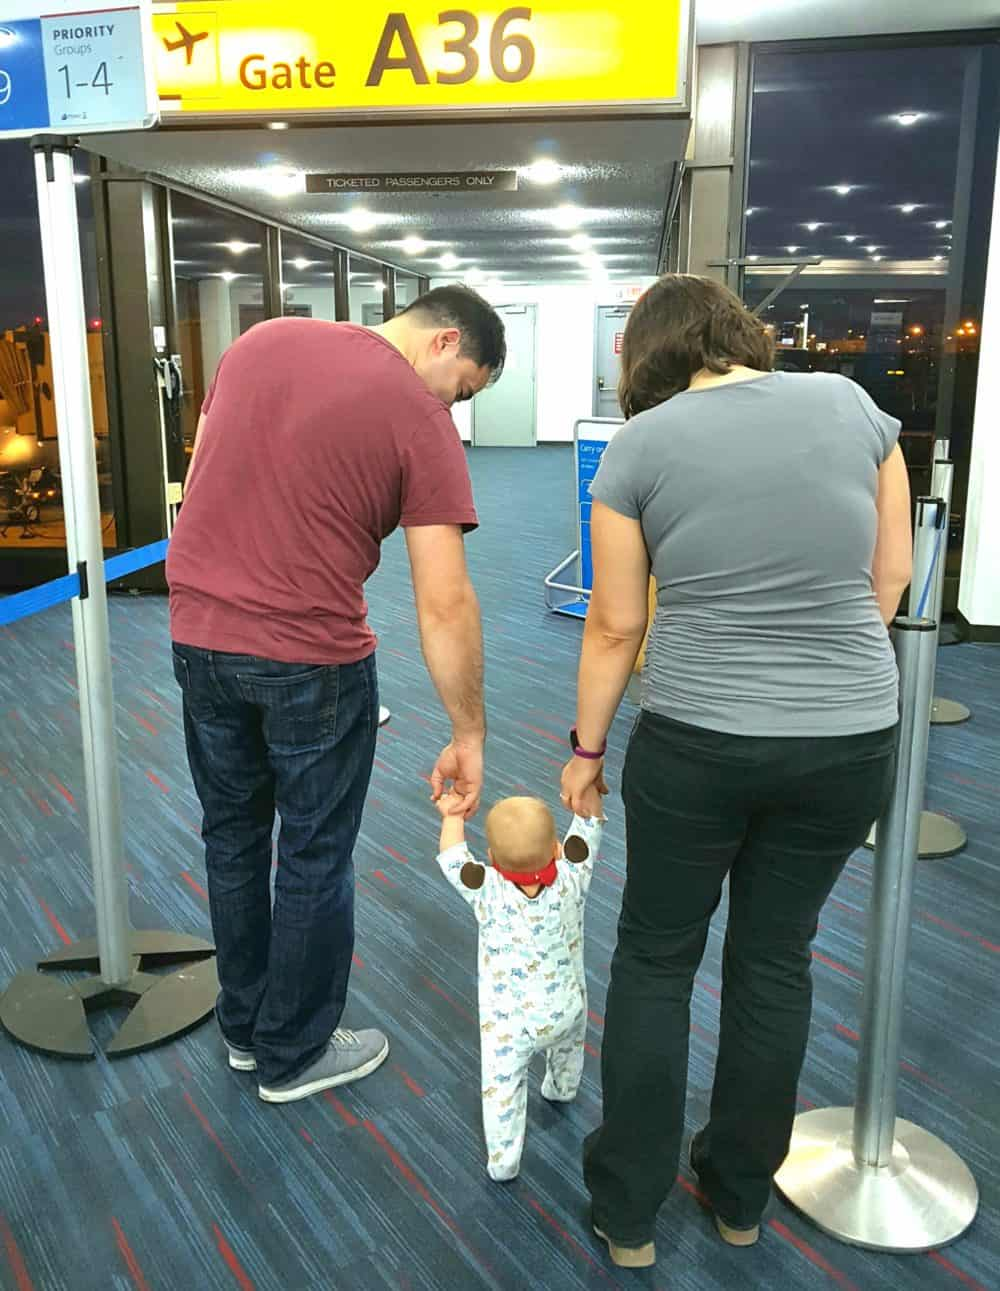 image of toddler in airport